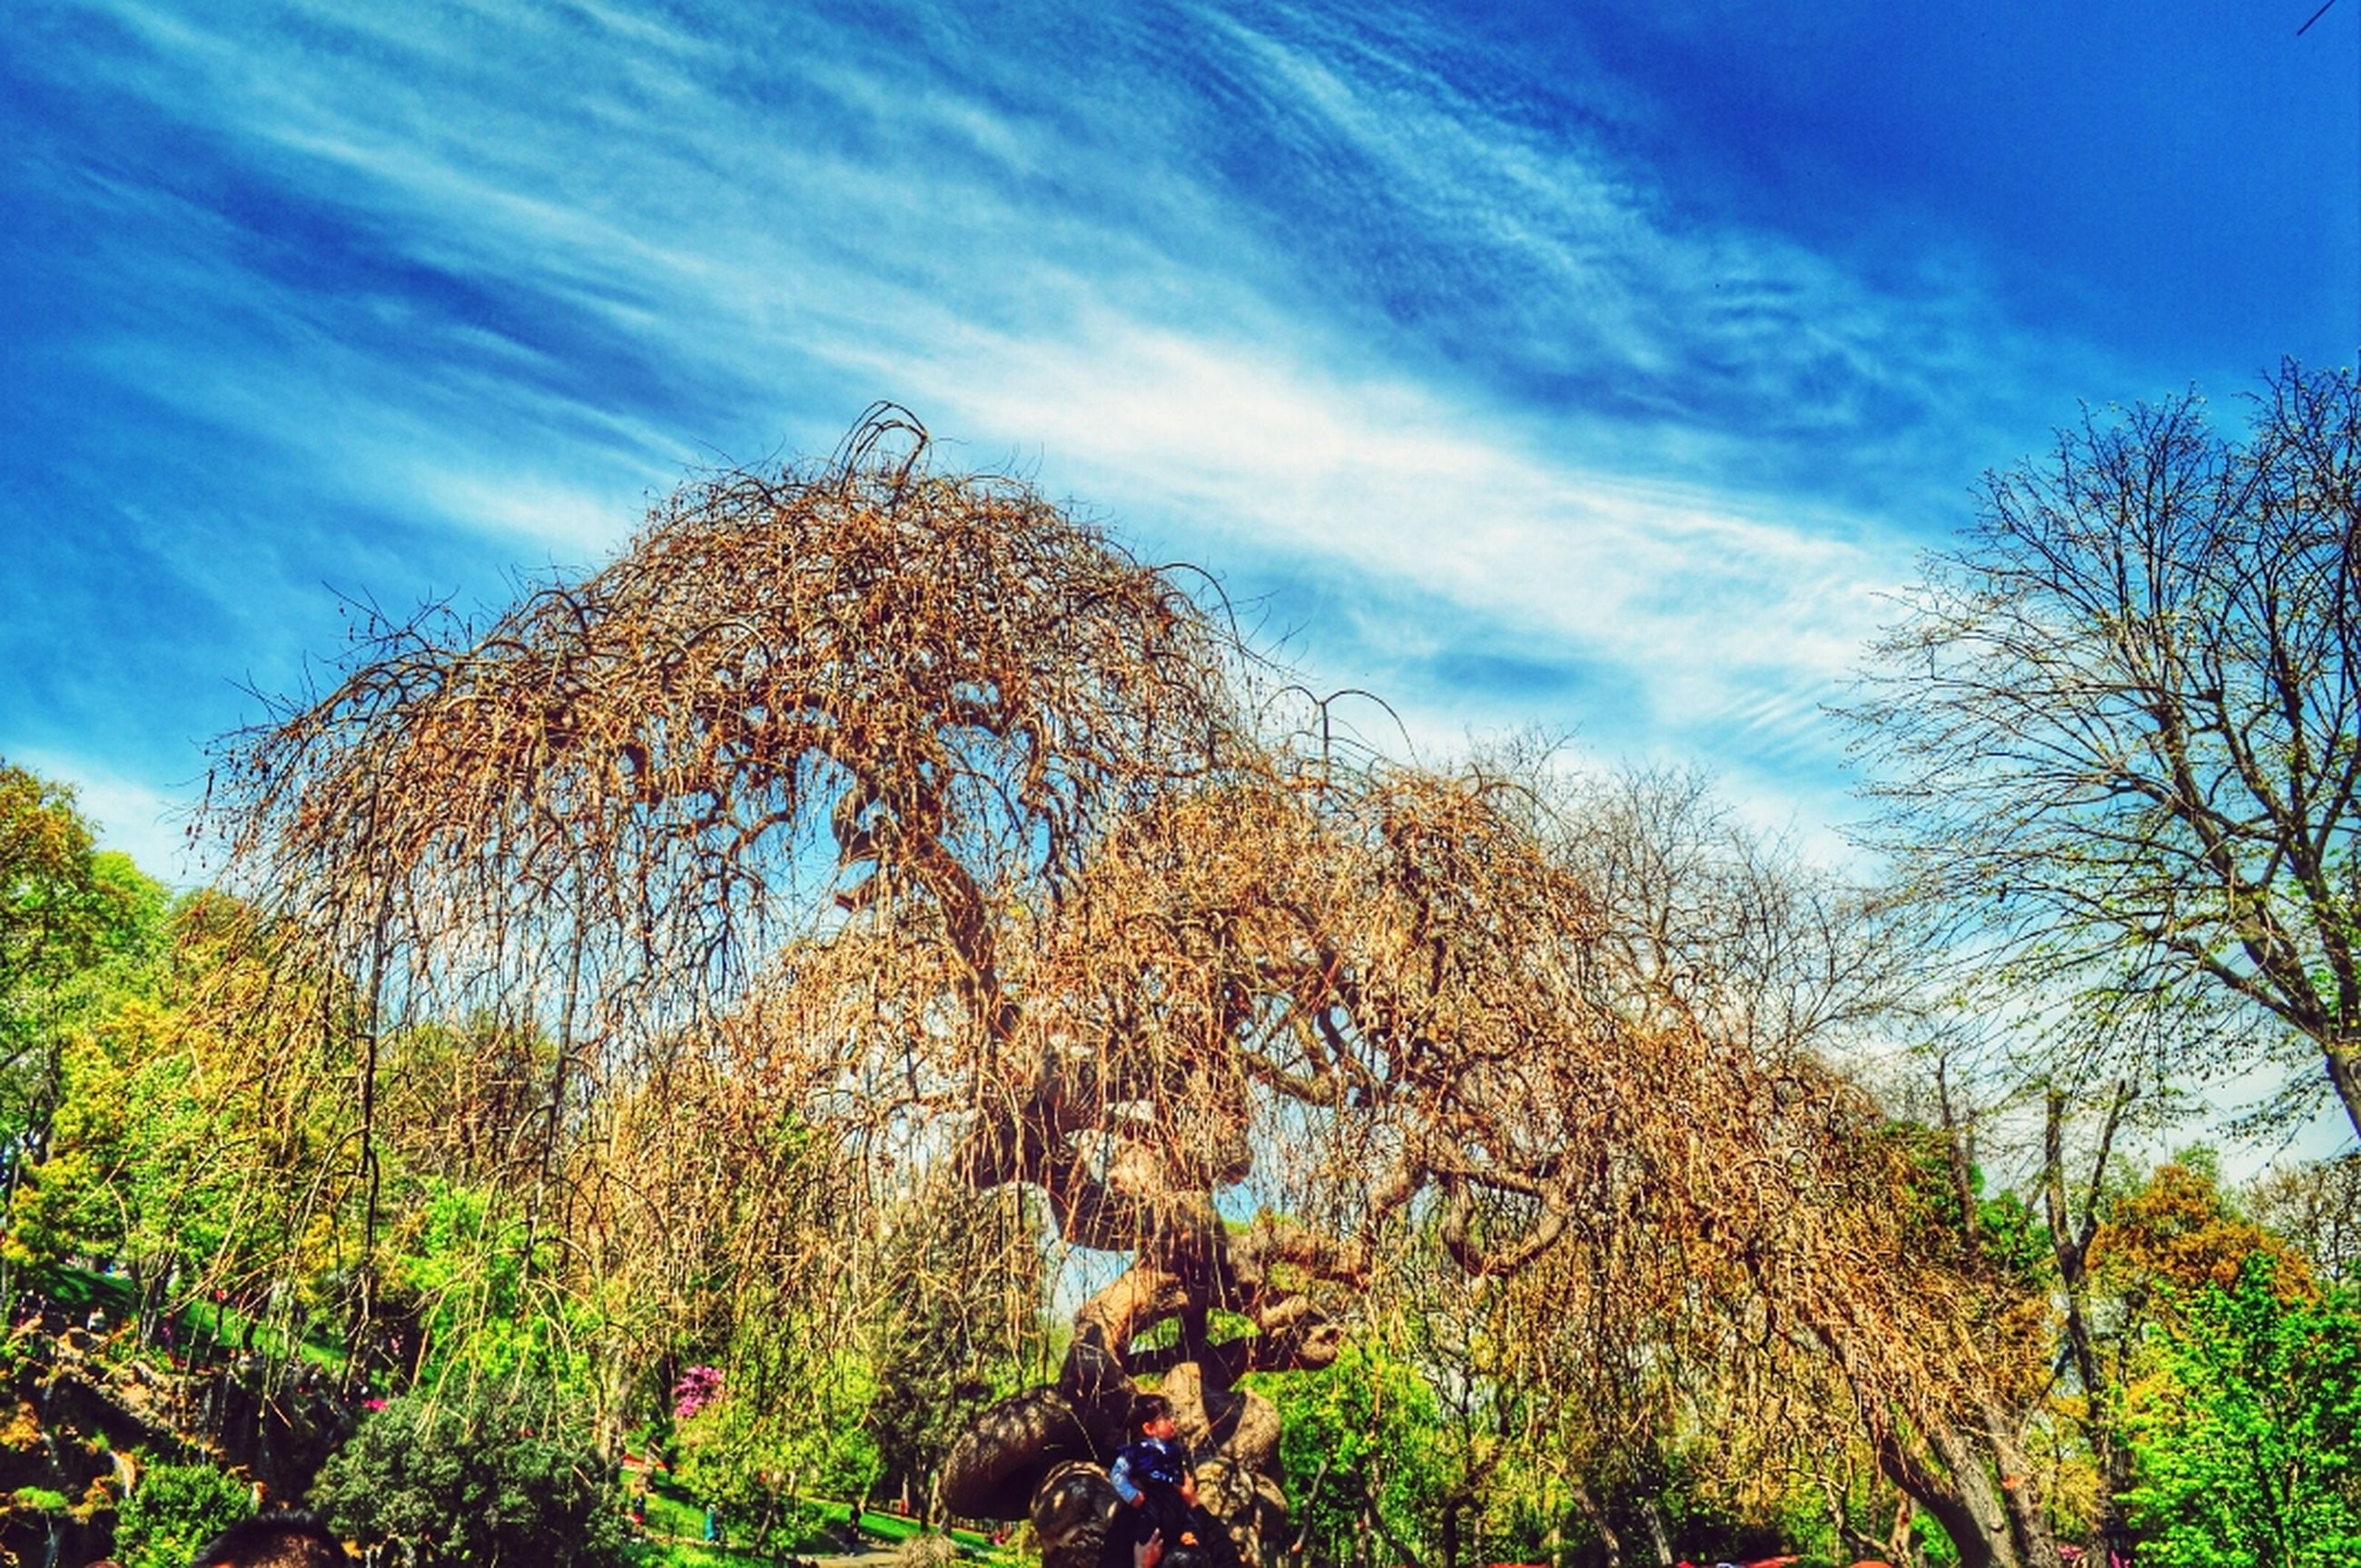 tree, sky, low angle view, growth, cloud - sky, tranquility, nature, blue, cloud, beauty in nature, day, plant, outdoors, no people, branch, tranquil scene, field, scenics, sunlight, green color